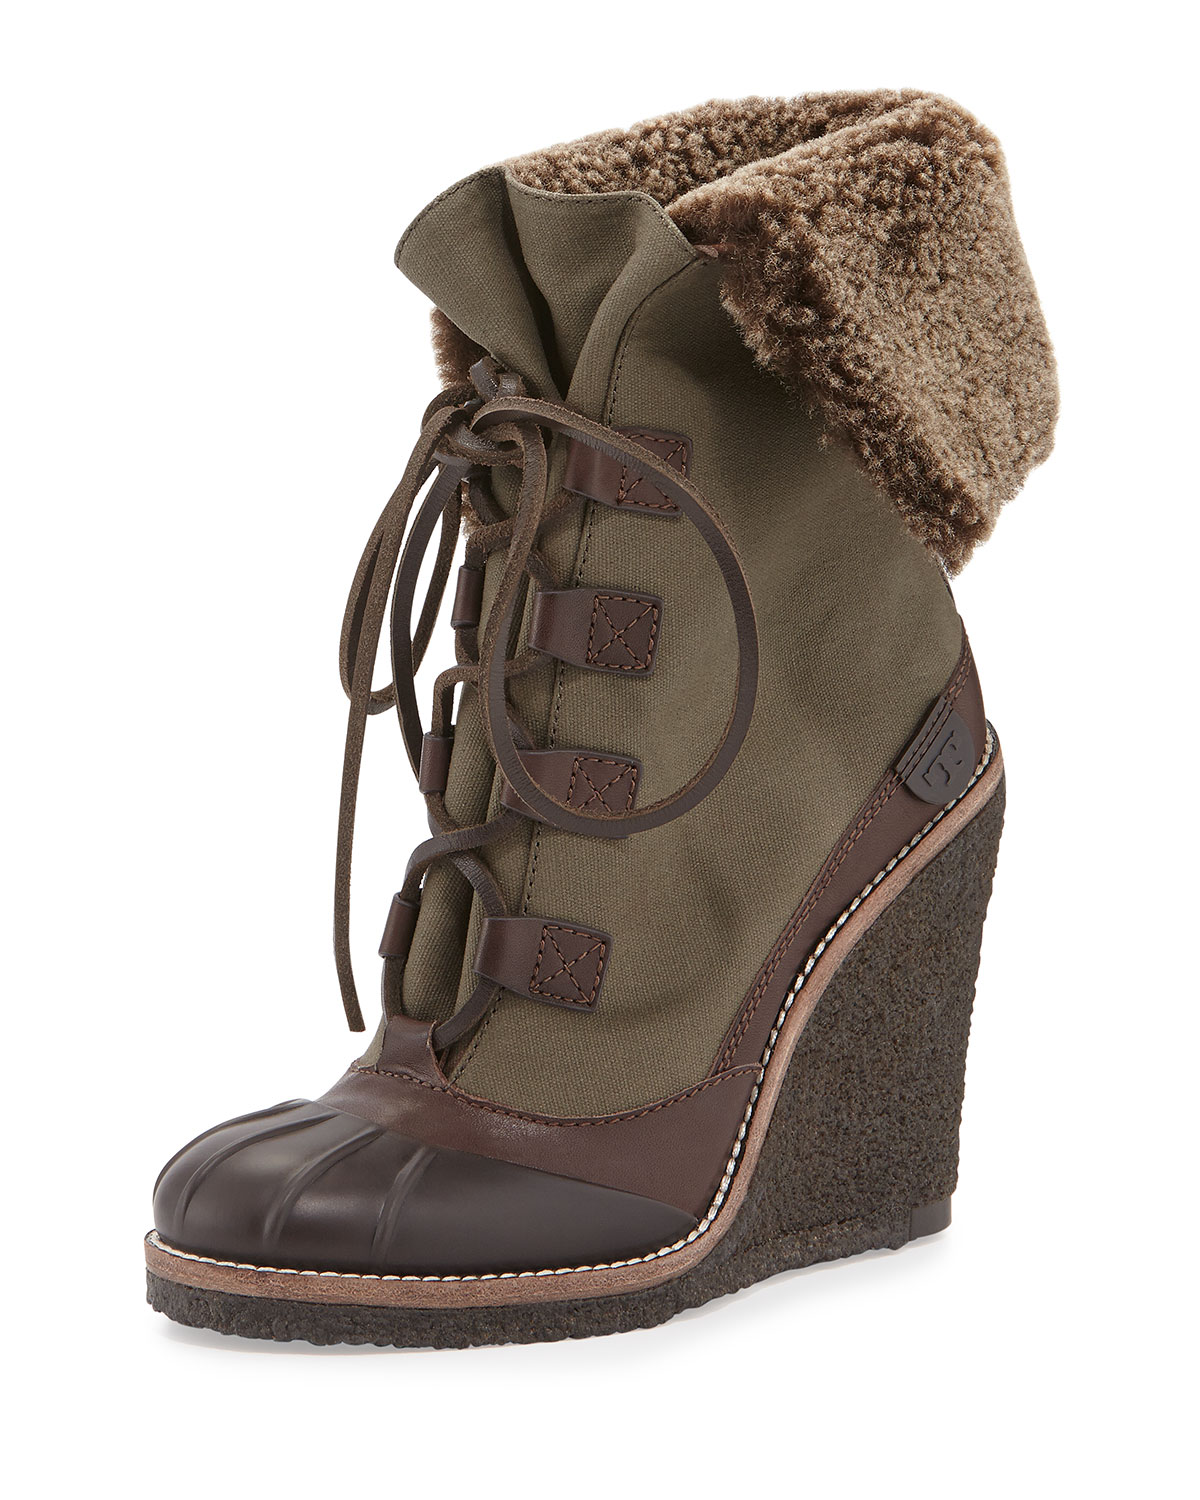 5a6dbd39c44 Tory Burch Fairfax Shearling-Lined Wedge Boot